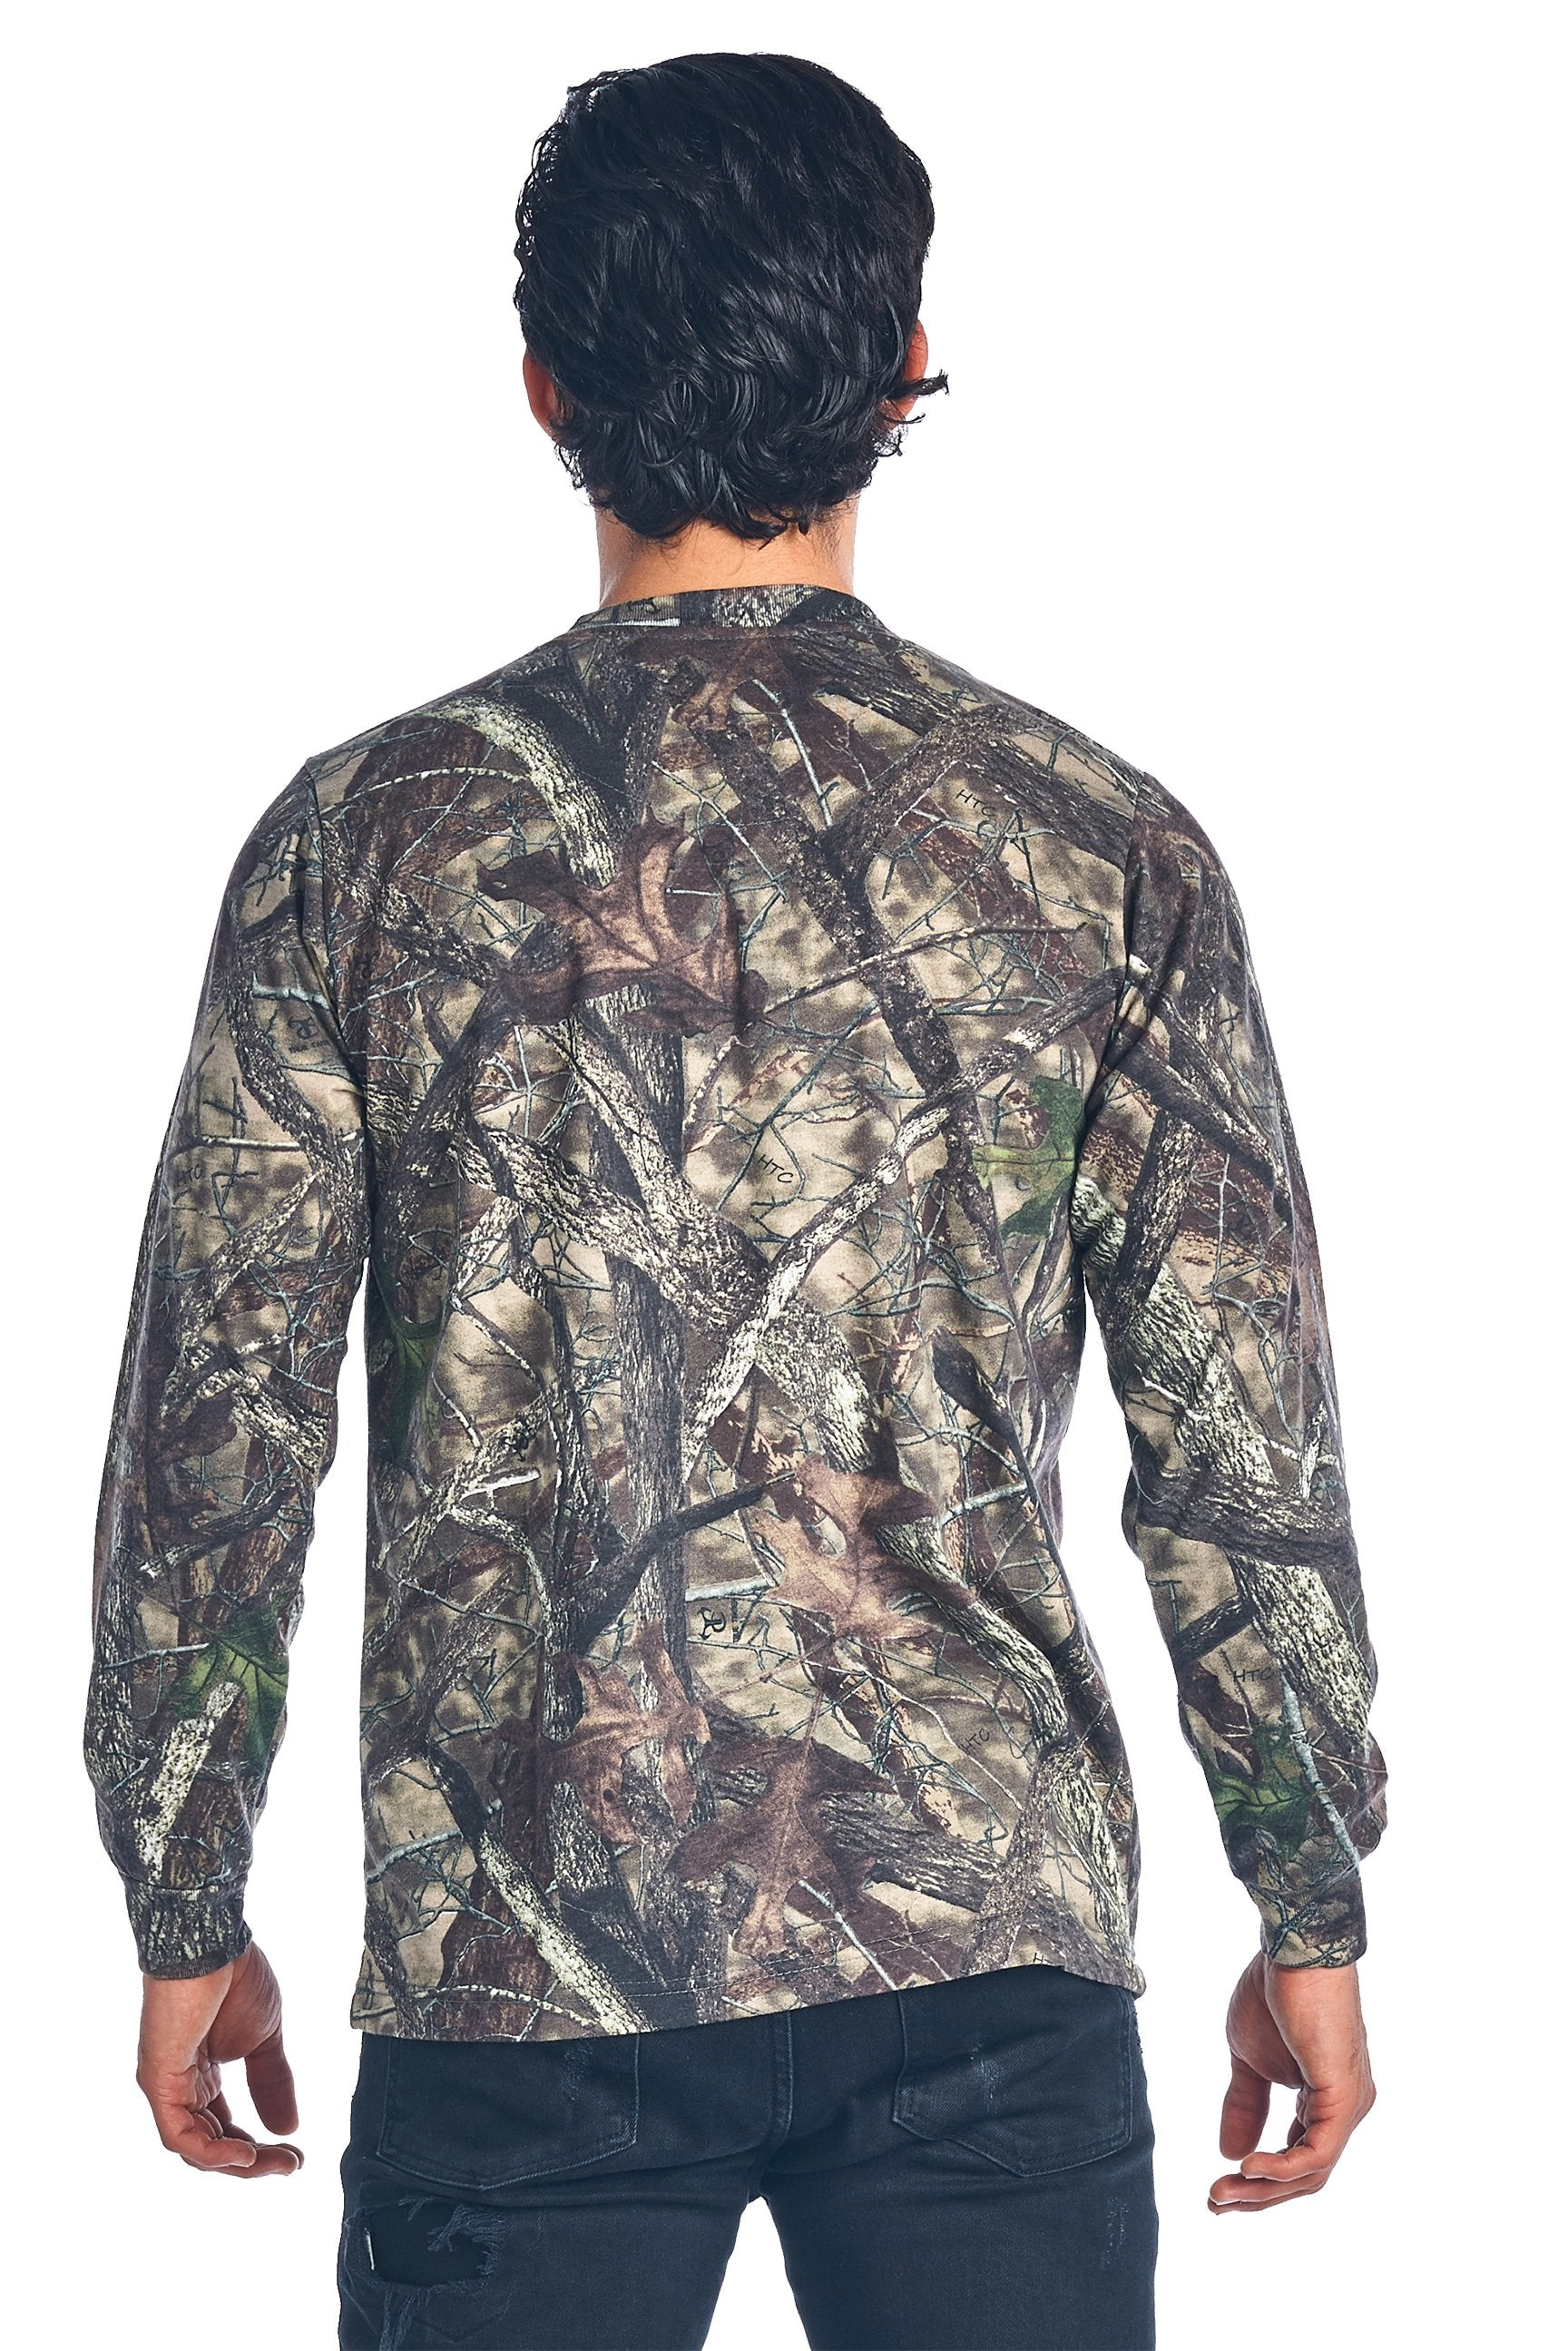 Camo Hunting Long Sleeve Shirt W/ PocketCamouflage Authentic True Timber S-5xl